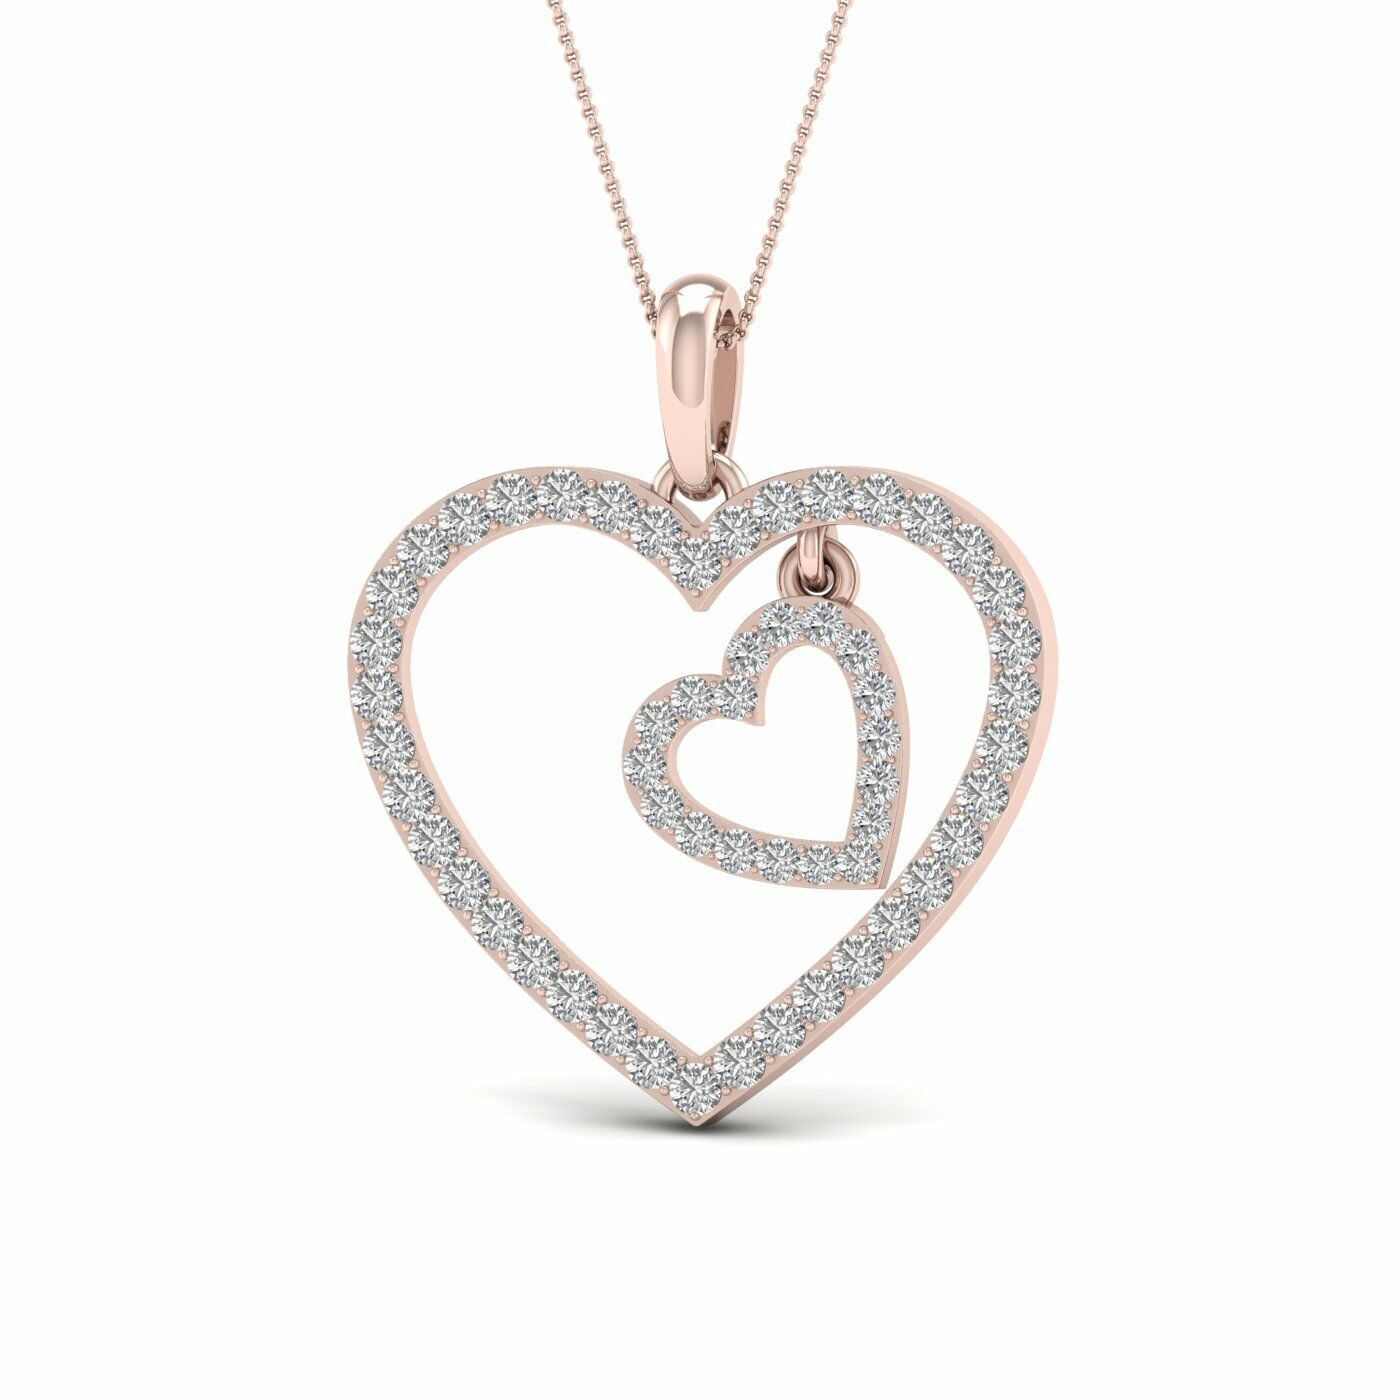 10kt pink gold Heart Pendant Valentine Gift Natural Diamond 18  Rope Chain